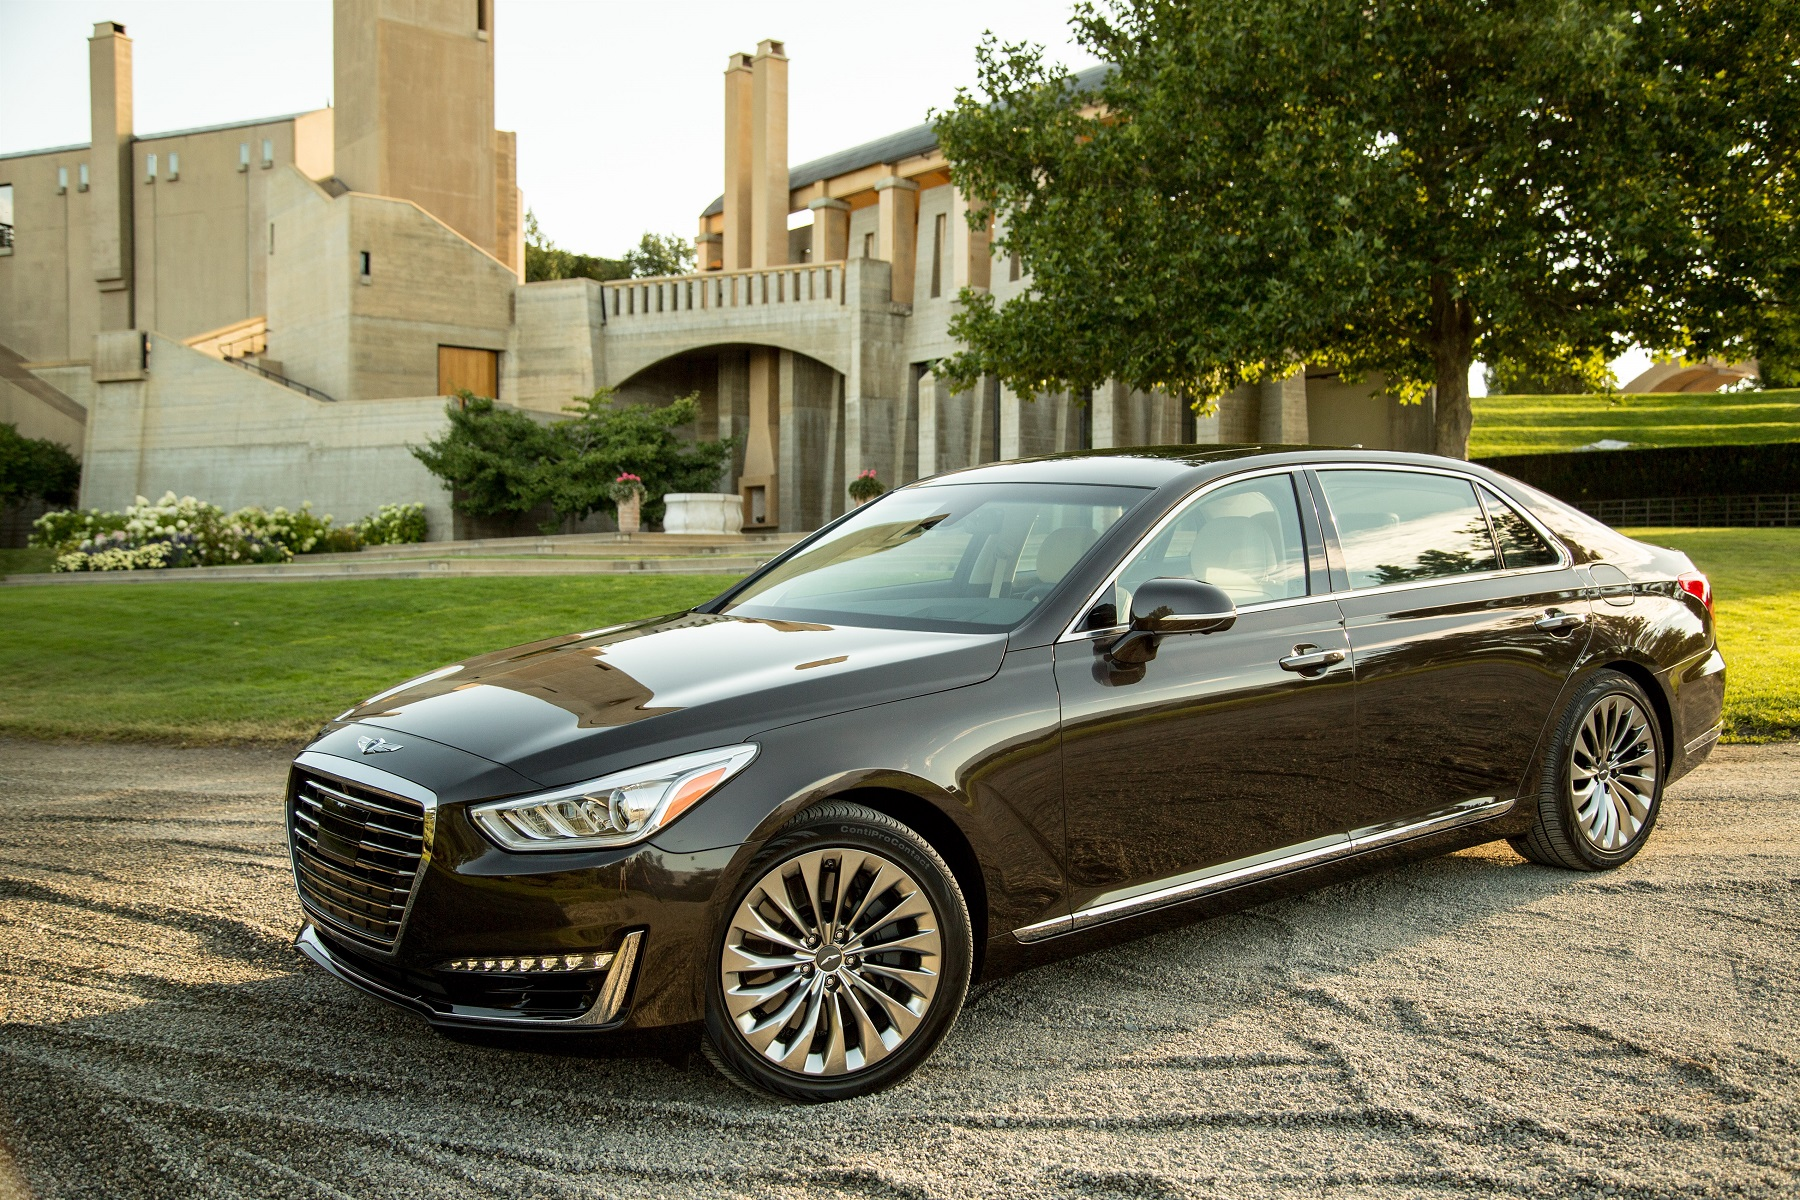 Best Luxury Vehicles: Best Underrated Luxury Cars For 2017